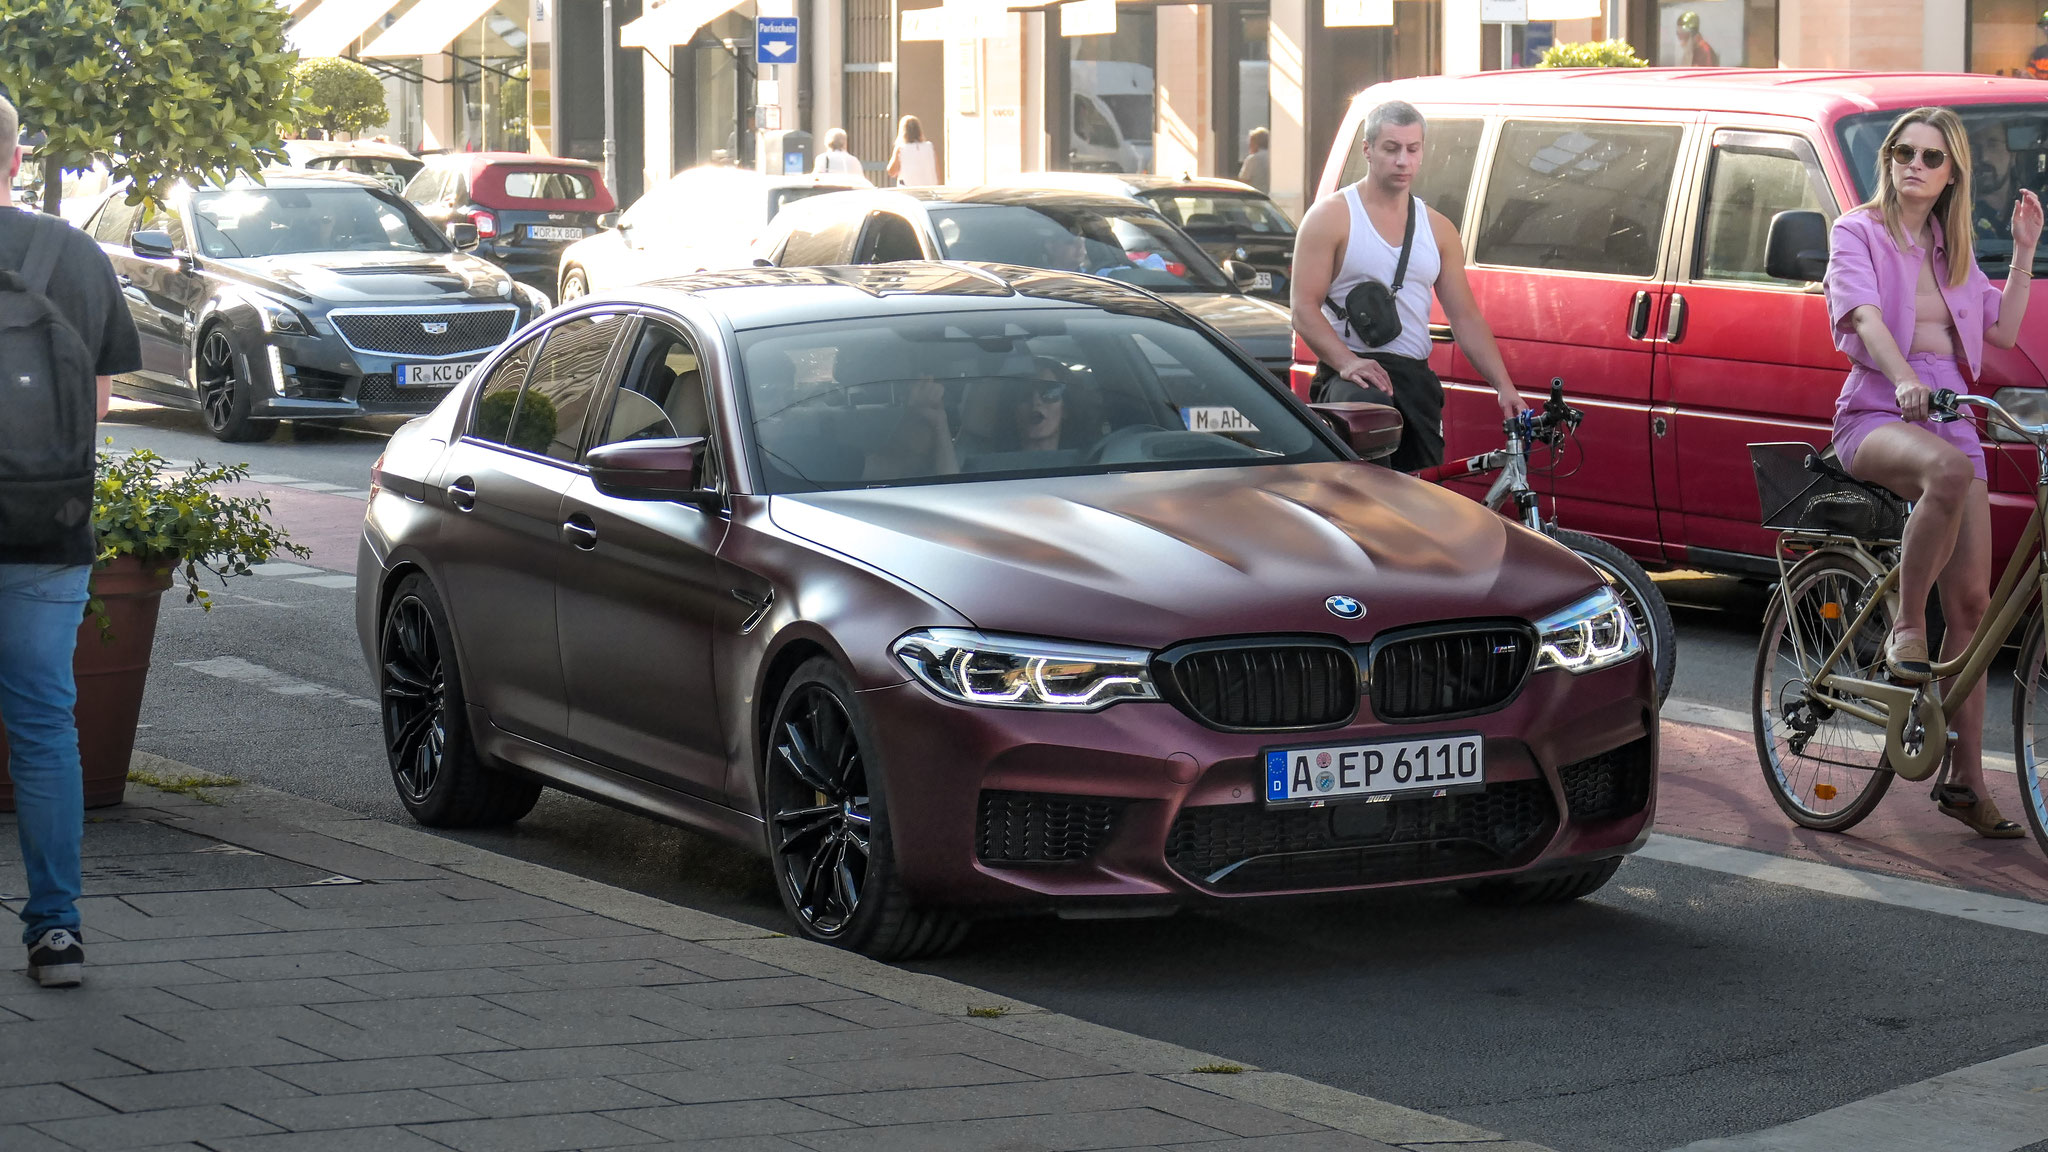 BMW M5 First Edition (1 of 400) - A-EP-6110